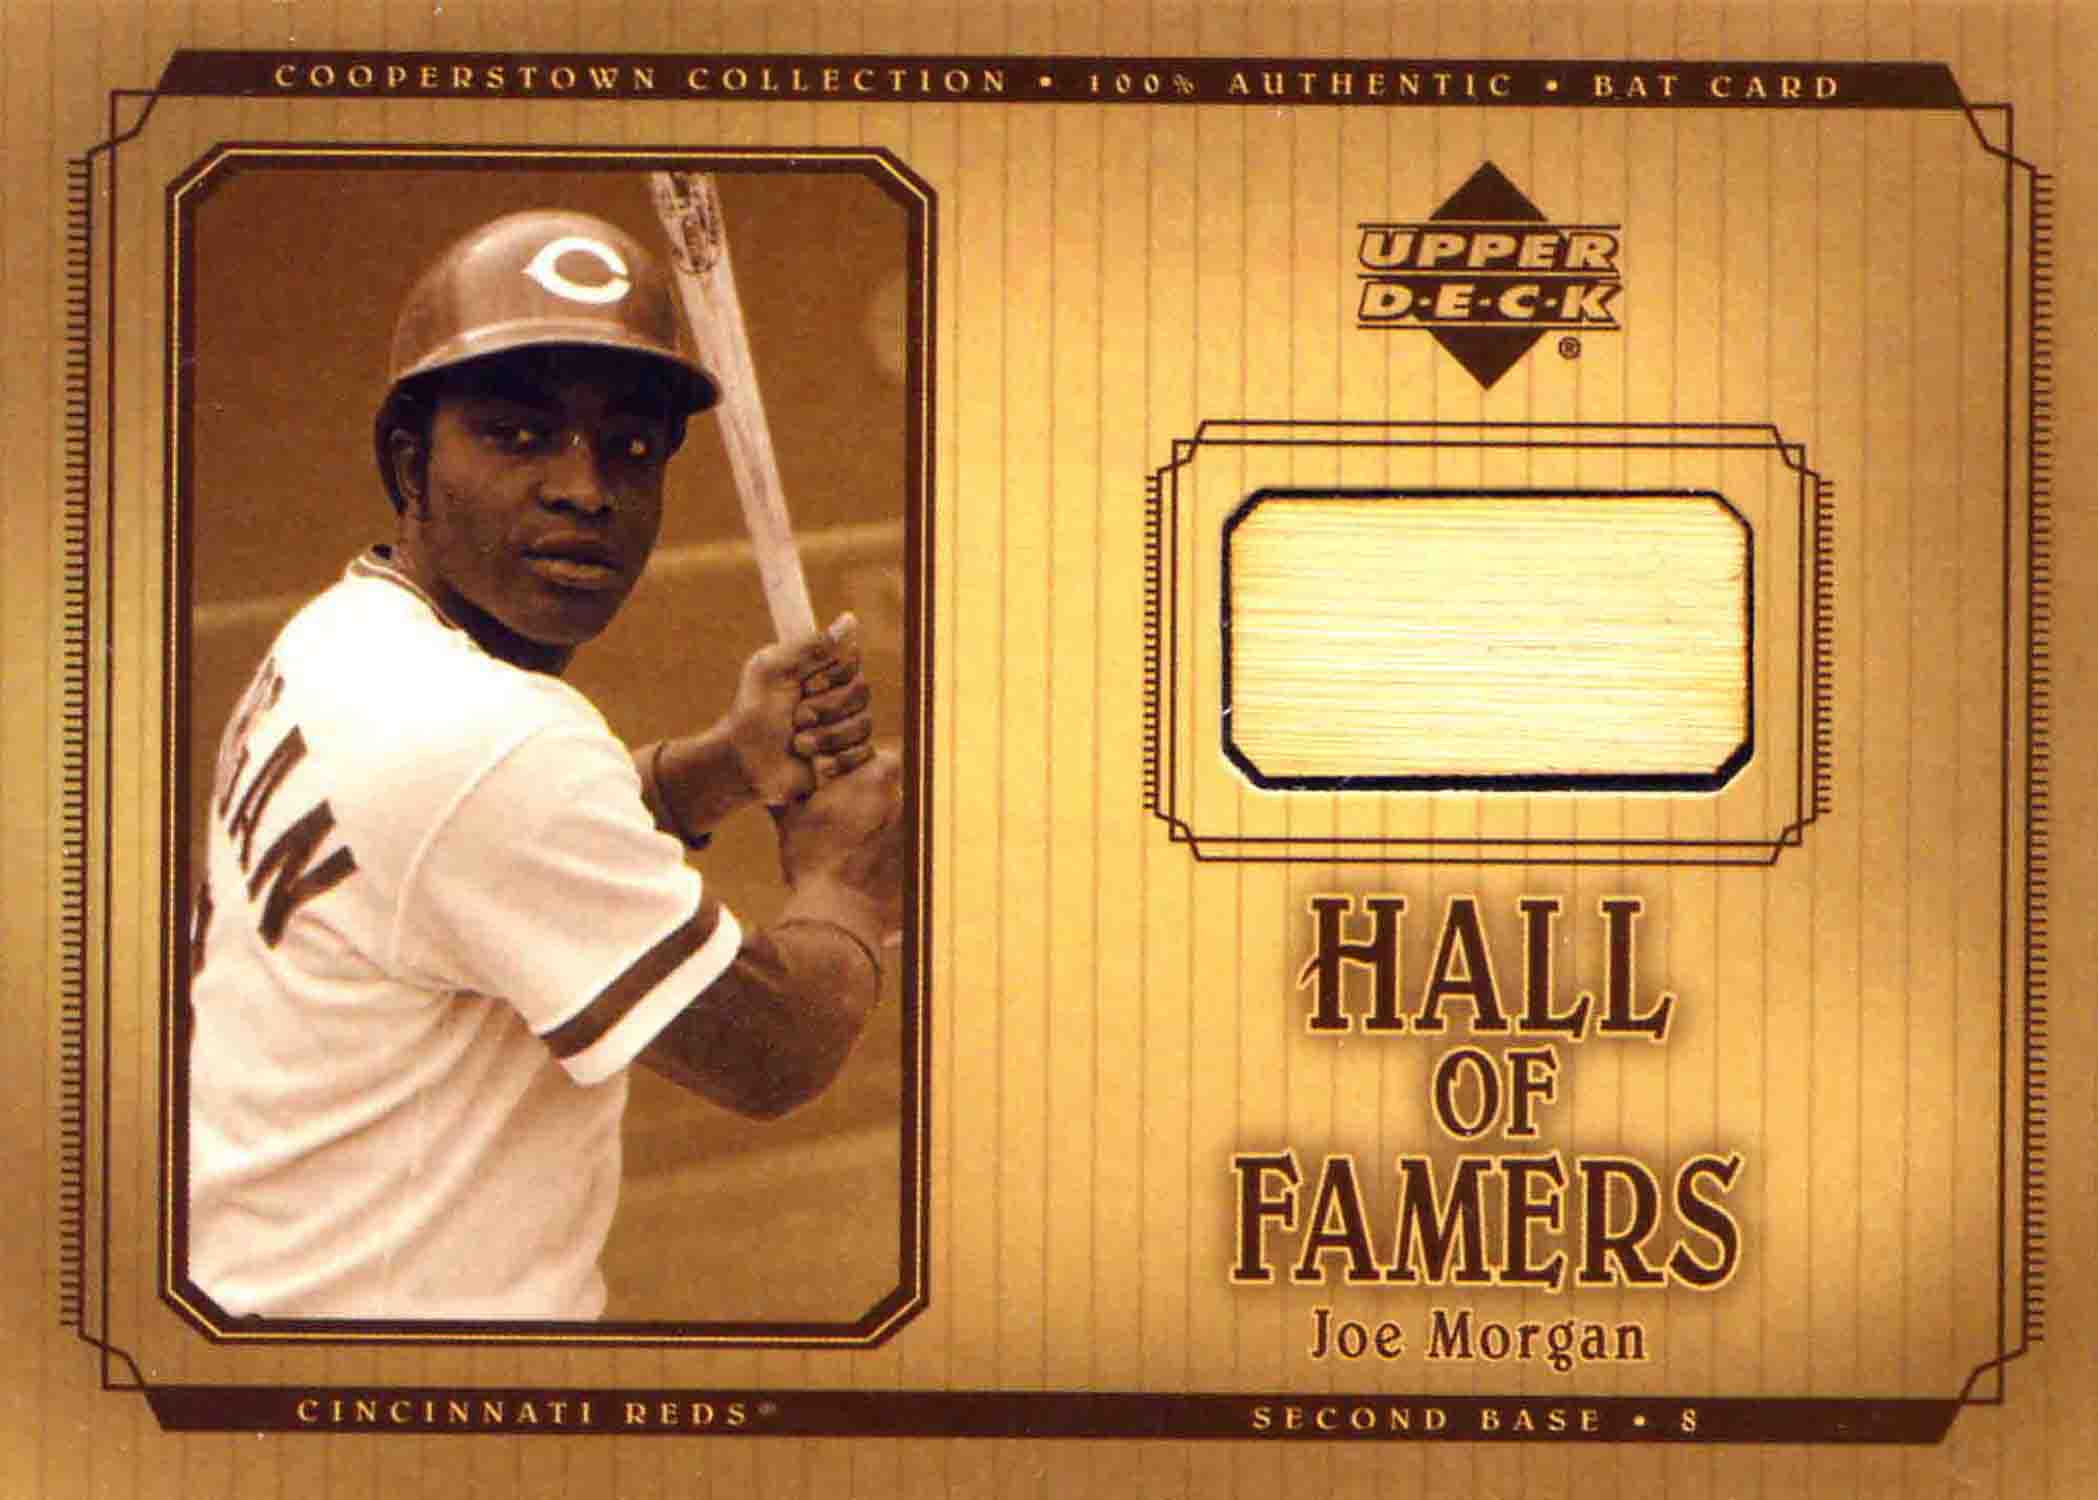 2001 Upper Deck Hall of Famers Game Bat